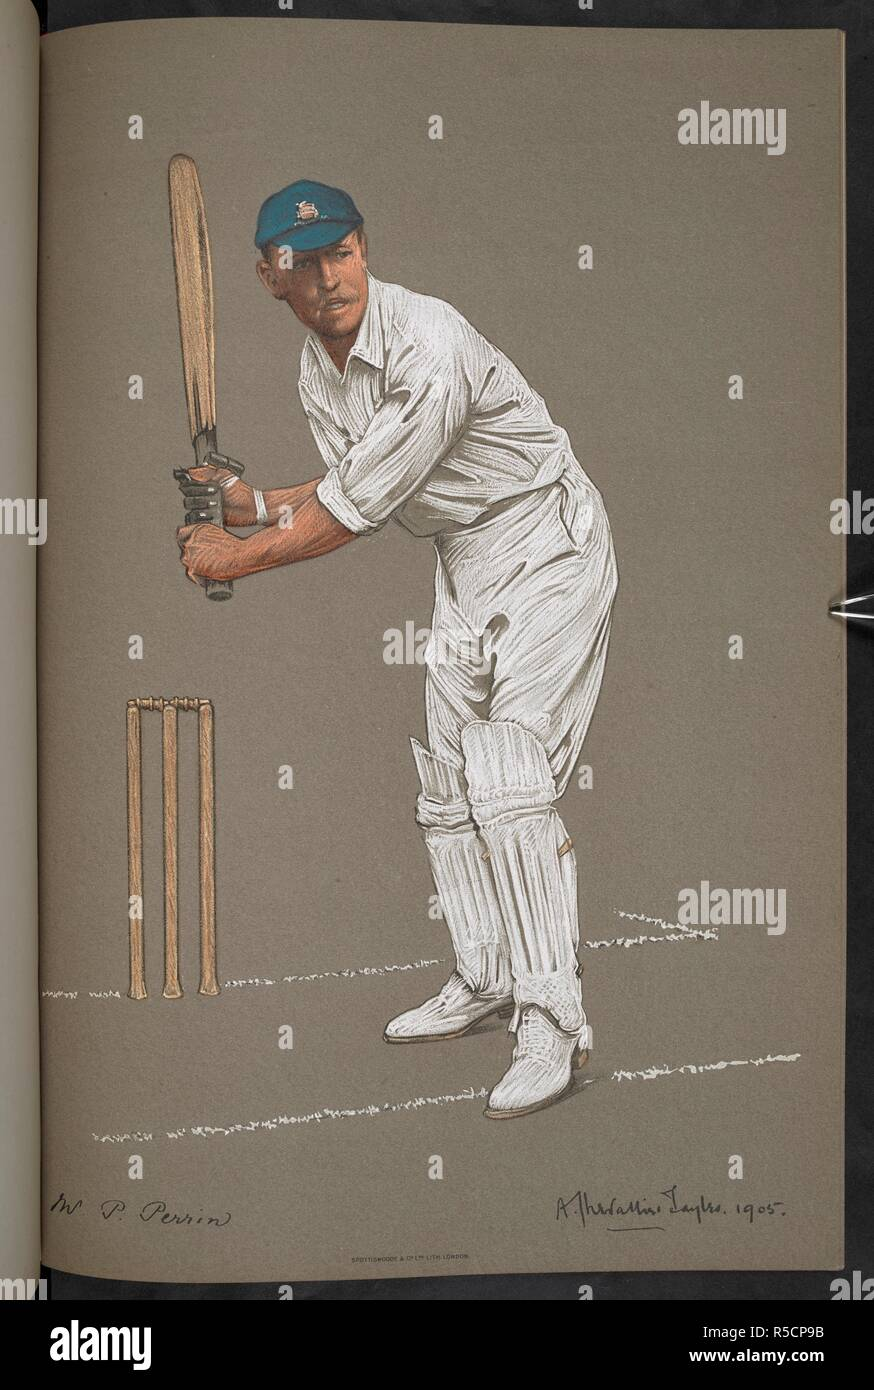 """Mr. P. Perrin, Essex. Percival Albert Perrin (1876–1945), known as either """"Percy"""" or """"Peter"""", was an English cricketer who played for Essex for more than thirty years from 1896. The Empire's Cricketers. From original drawings by A. Chevallier Tayler. With biographical sketches by G. W. Beldam. Season 1905 [48 plates with descriptive text.]. [London] : The Fine Art Society, Ltd. 148 New Bond Street, W., [1905]. Source: C.194.c.87, plate 44. Language: English. Stock Photo"""